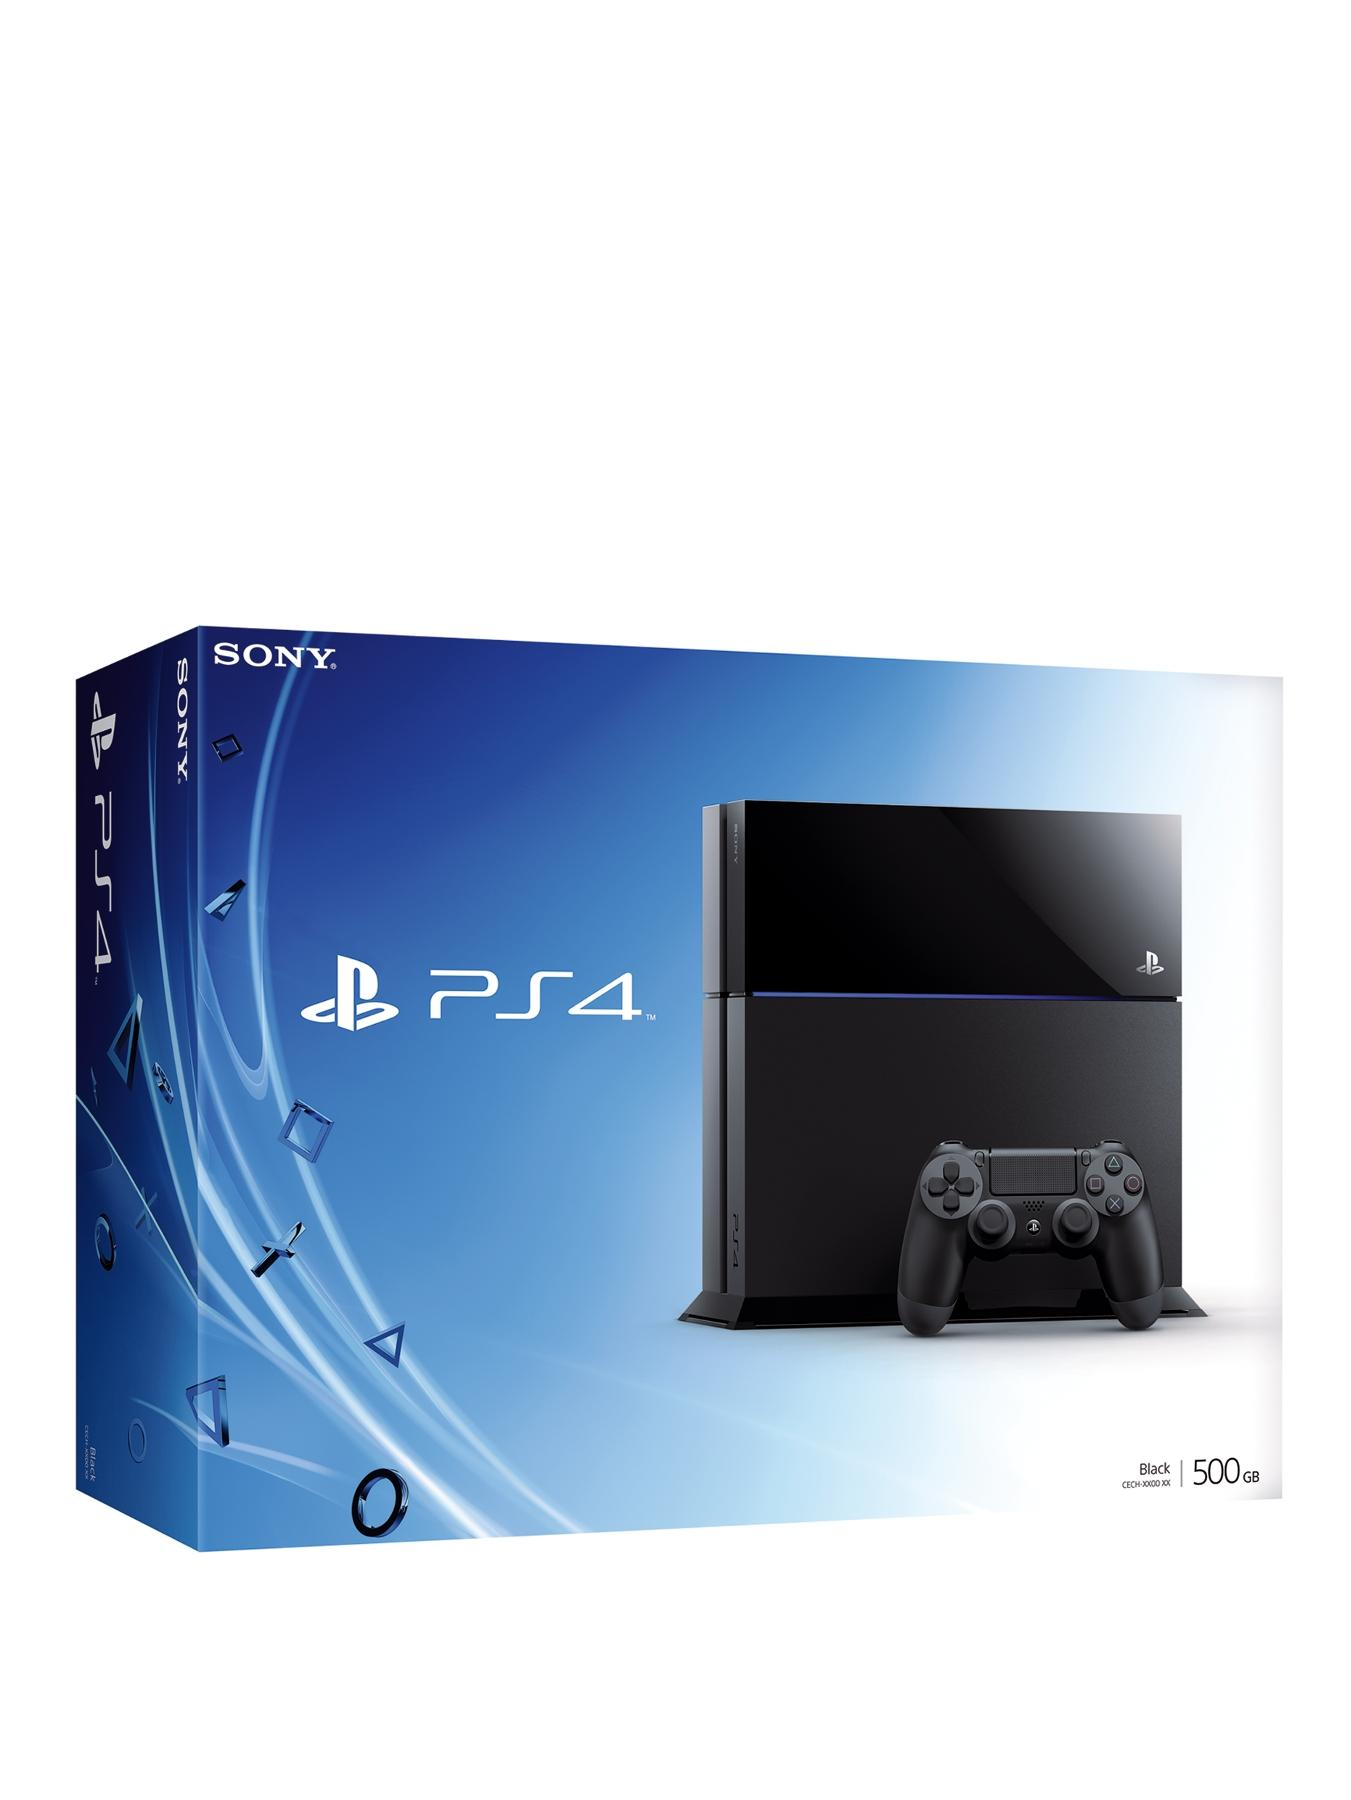 Console with Optional 90 Days or 12 Months PlayStation Plus